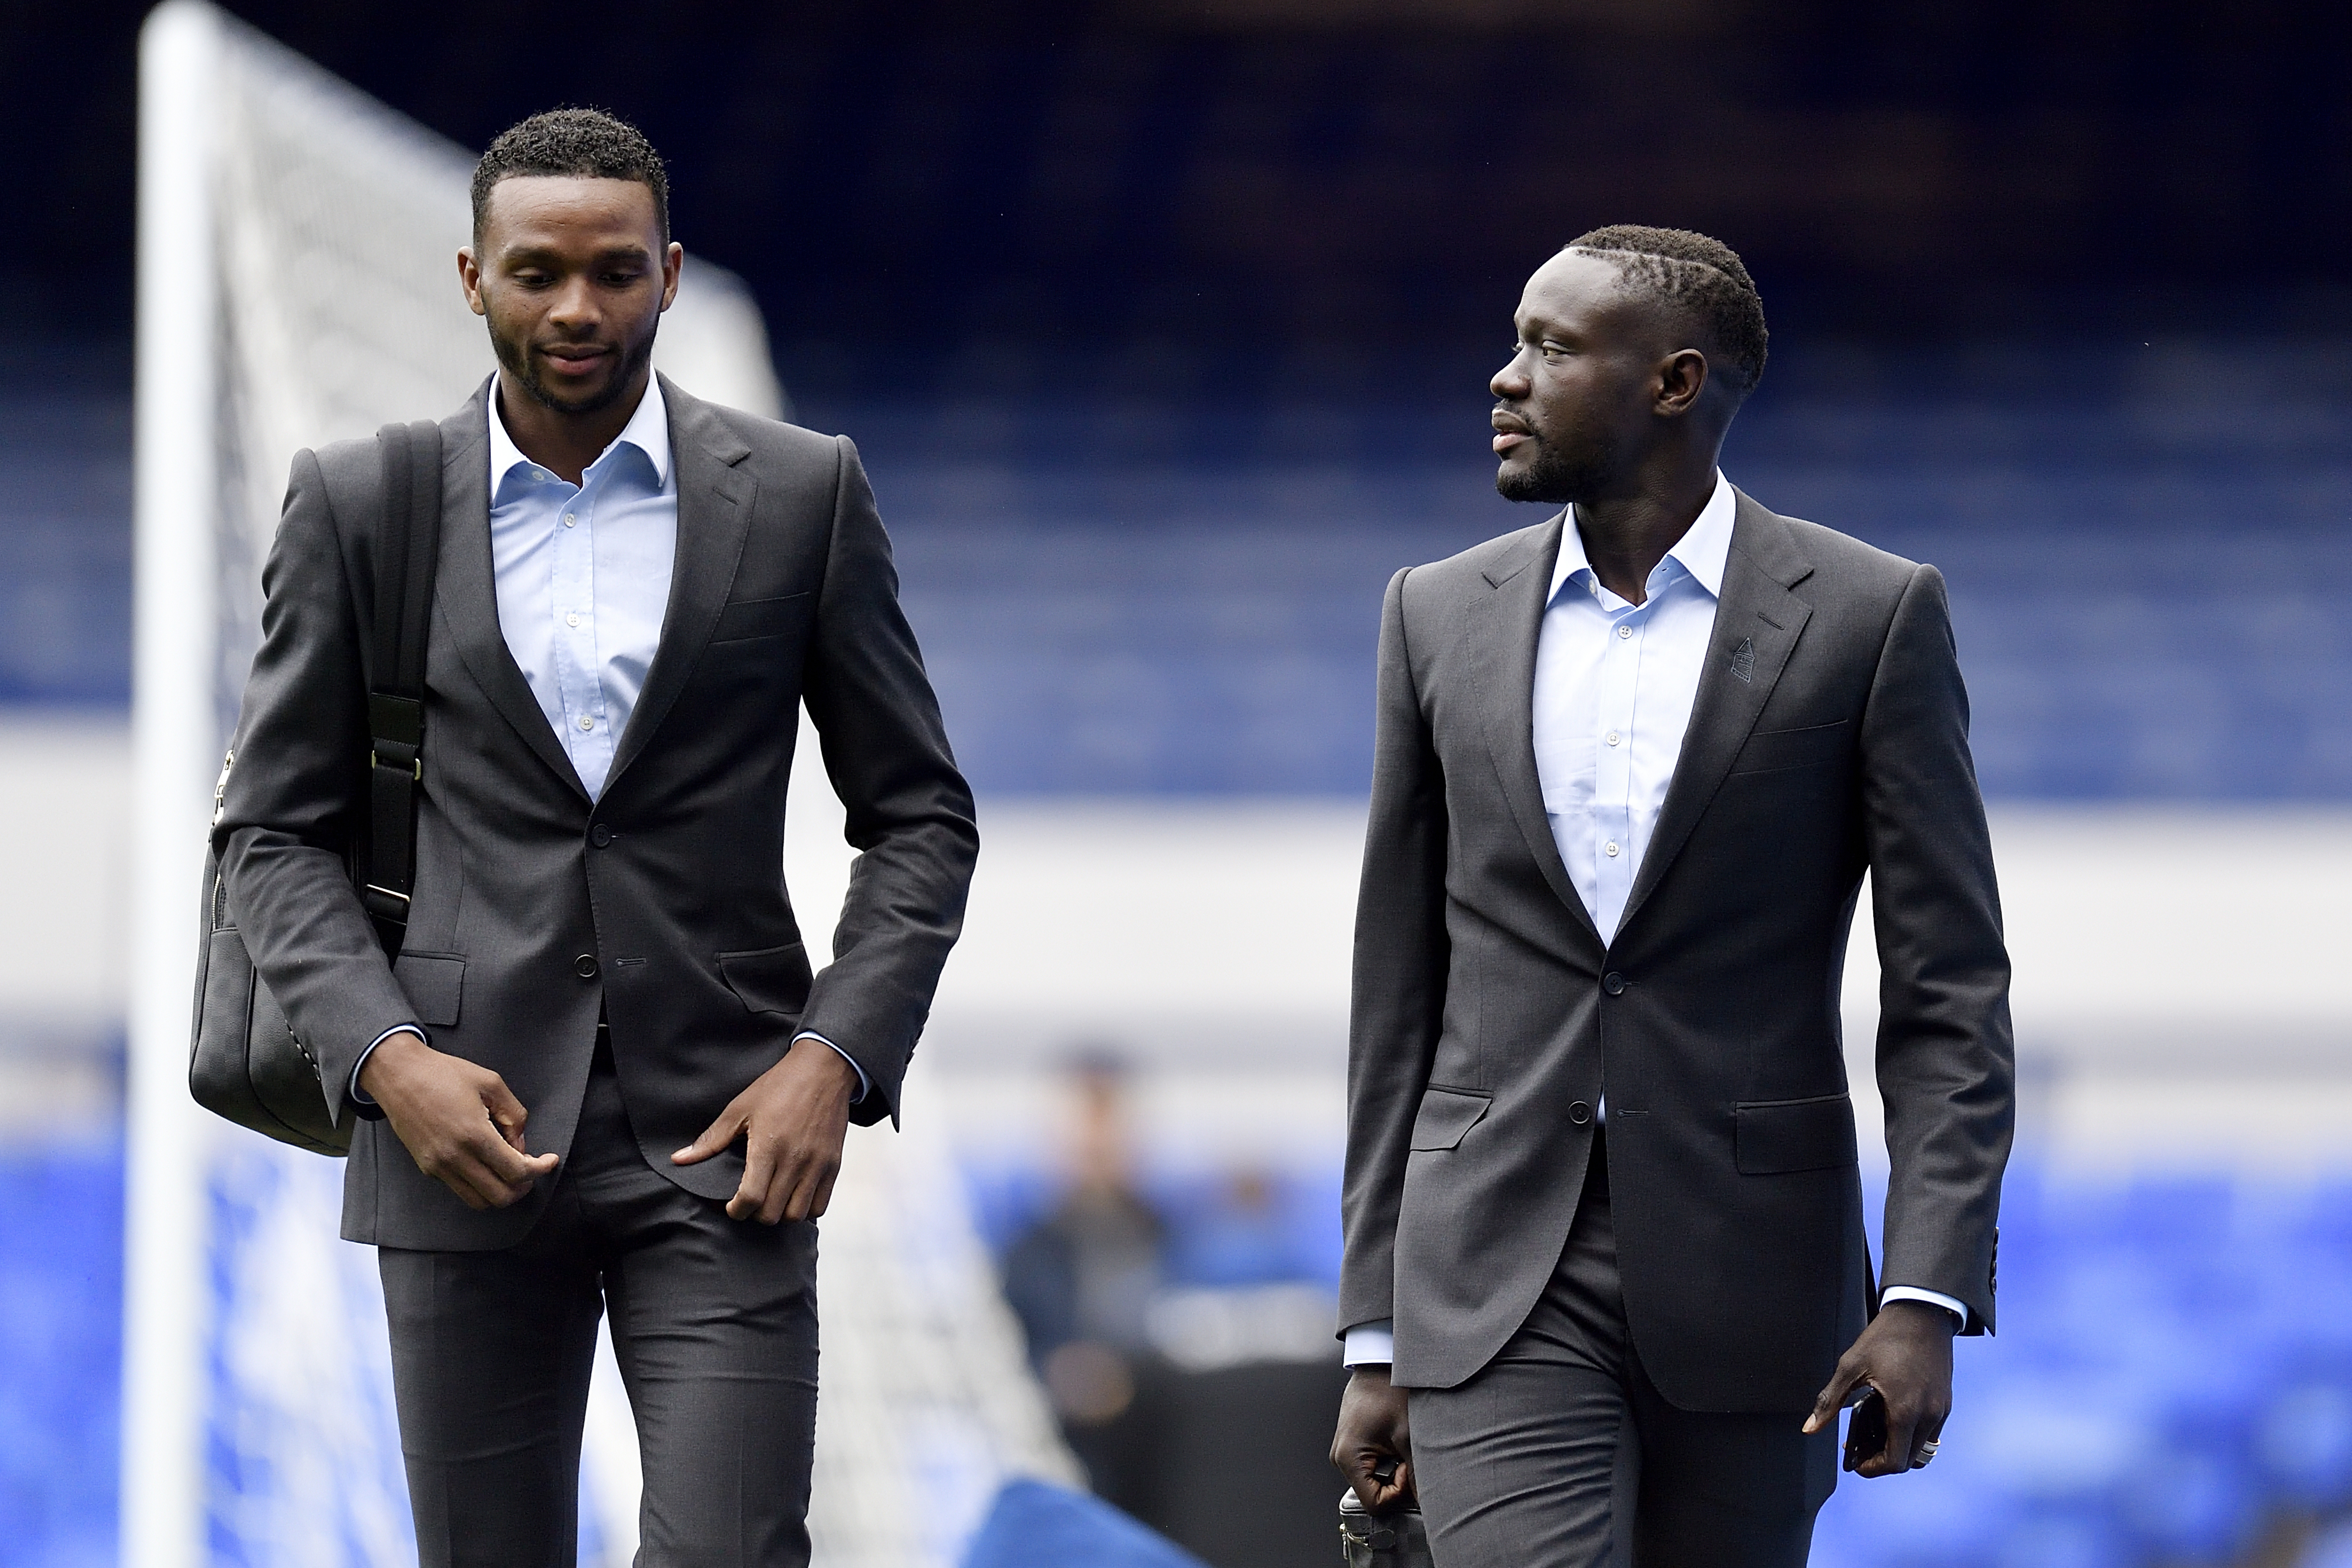 Ancelotti provides transfer update on two Everton players